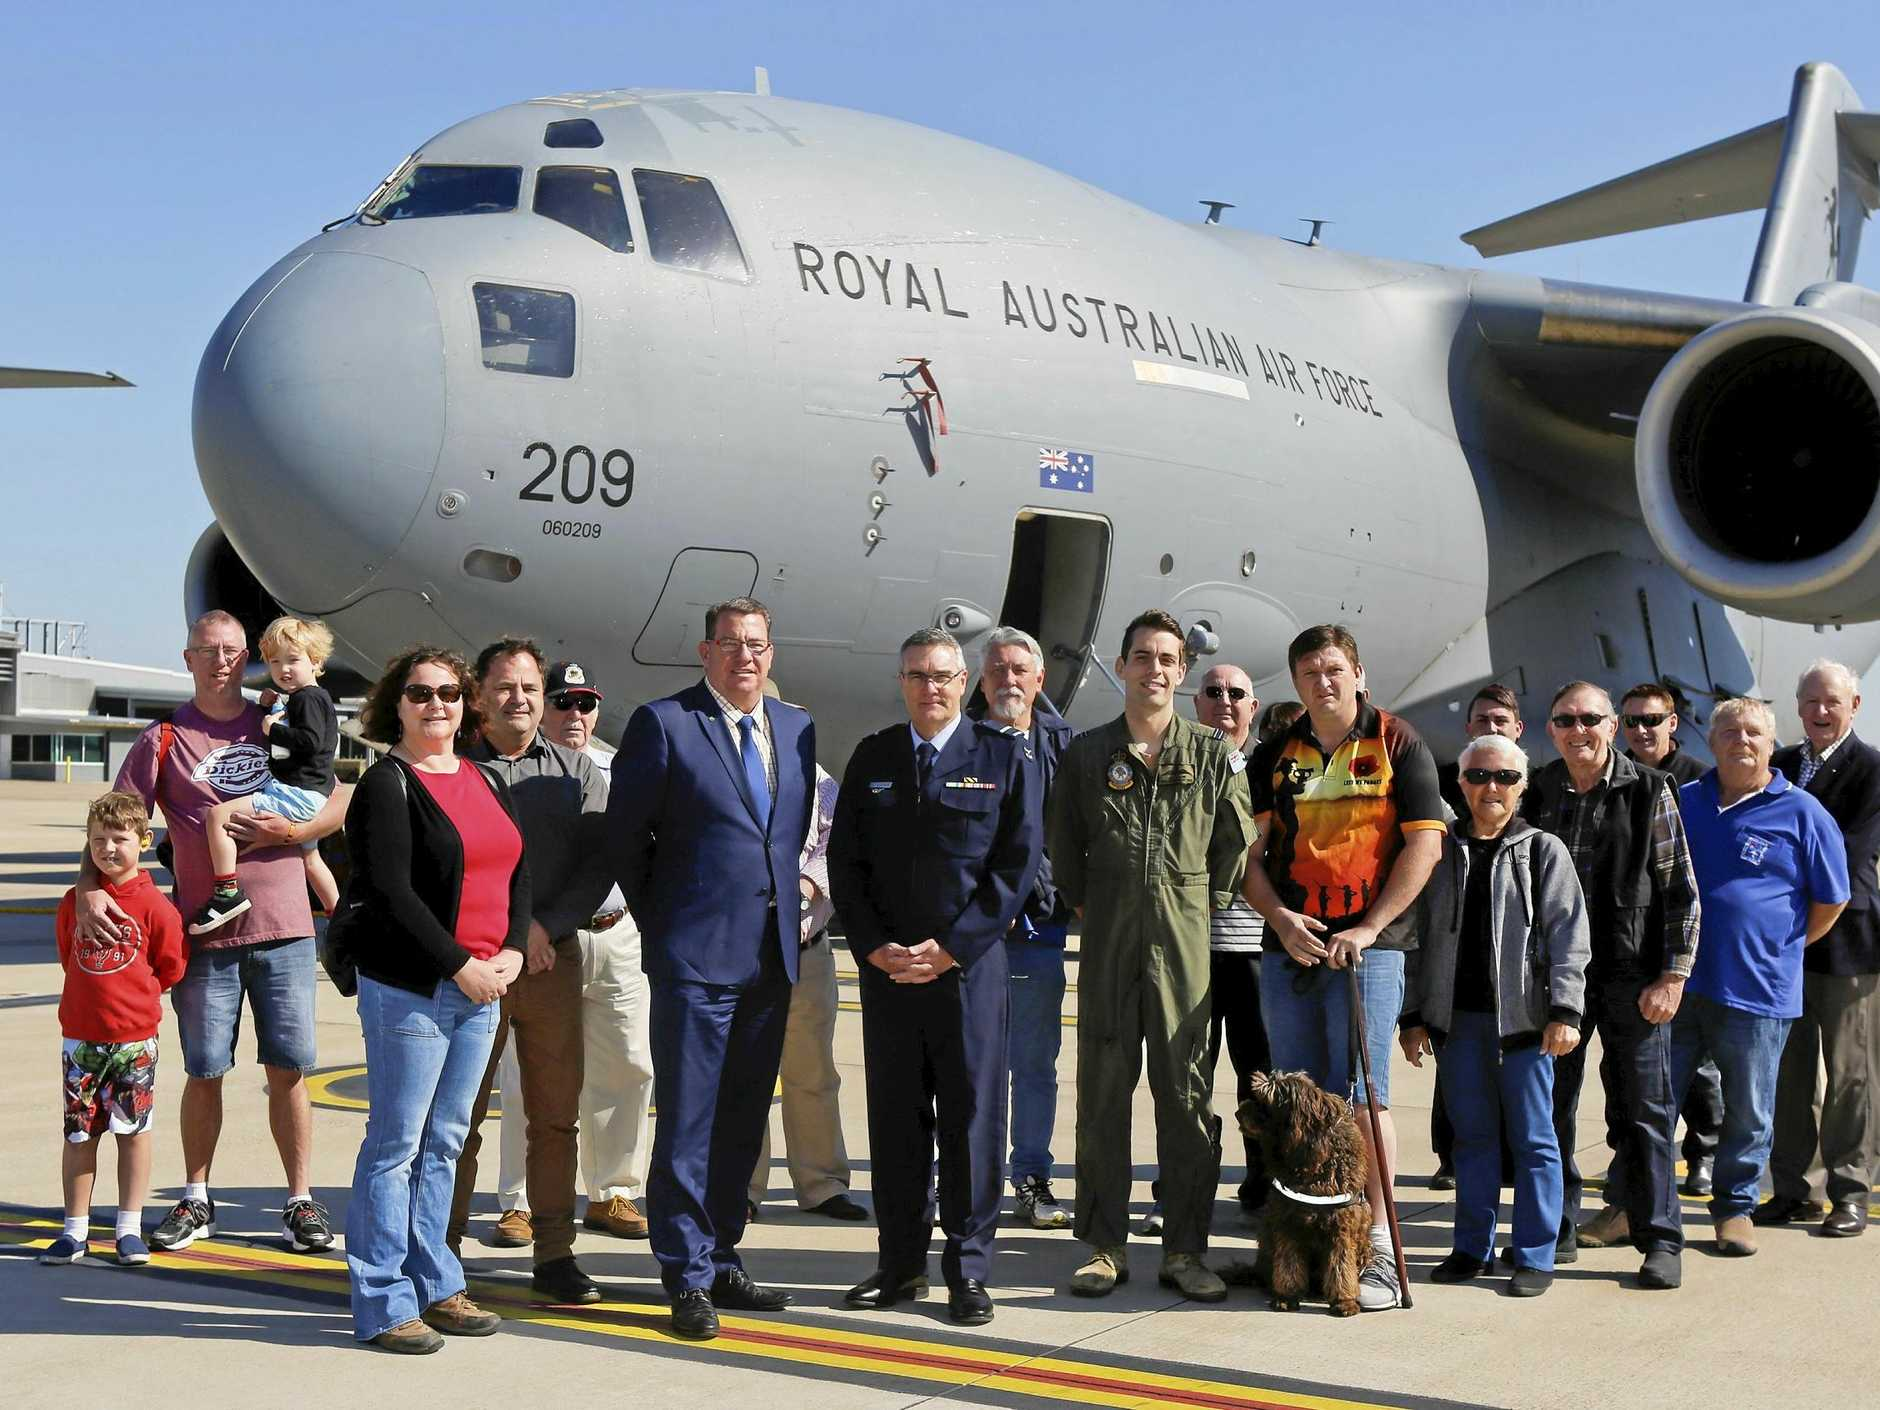 UP CLOSE: Senior Australian Defence Force Officer, Air Commodore Kenneth Robinson, CSC, Federal Member for Wright Mr Scott Buchholz MP and members of Veterans Support Centre with a C-17 Globemaster during their visit to No. 36 Squadron.